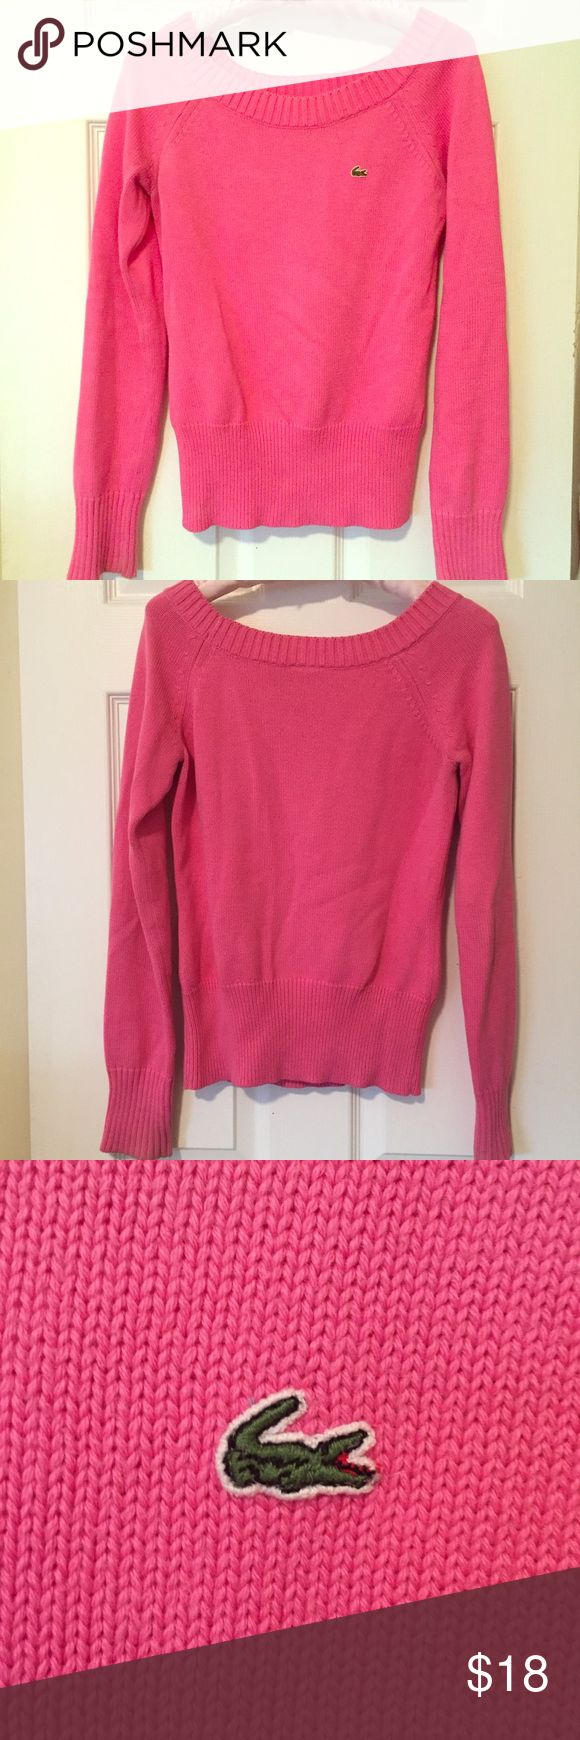 LACOSTE pink boatneck sweater This is a Pink Lacoste sweater made from 100% cotton. It's a heavier knit sweater so it's perfect for both fall and early spring. Needs to be dry cleaned but is in otherwise great condition! Lacoste Sweaters Crew & Scoop Necks